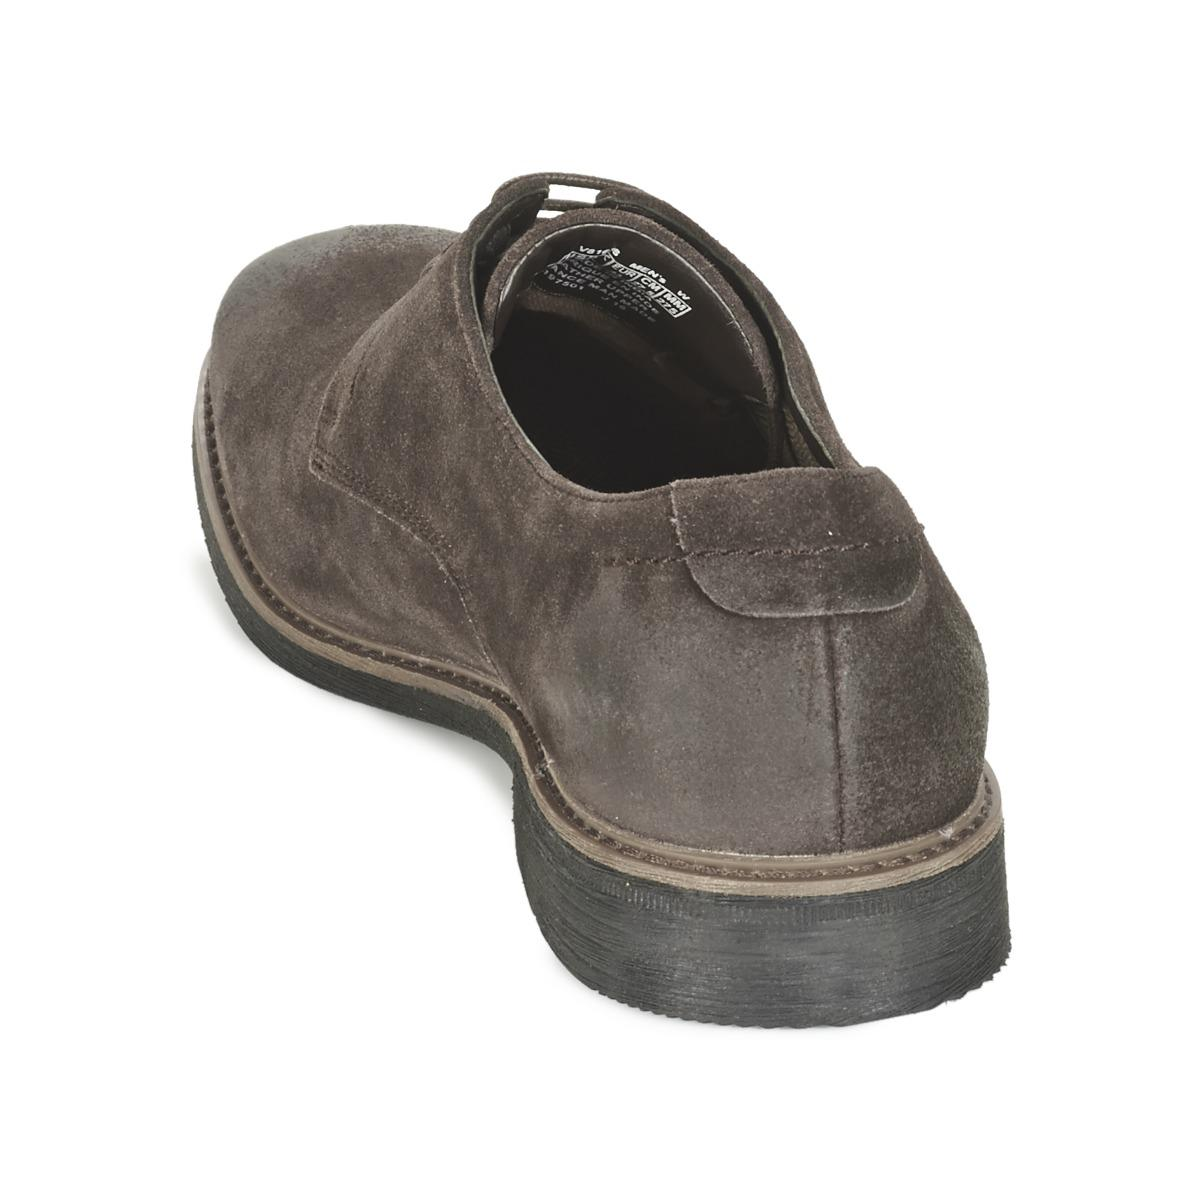 Rockport Rubber Classic Break Plain Toe Casual Shoes in Brown for Men